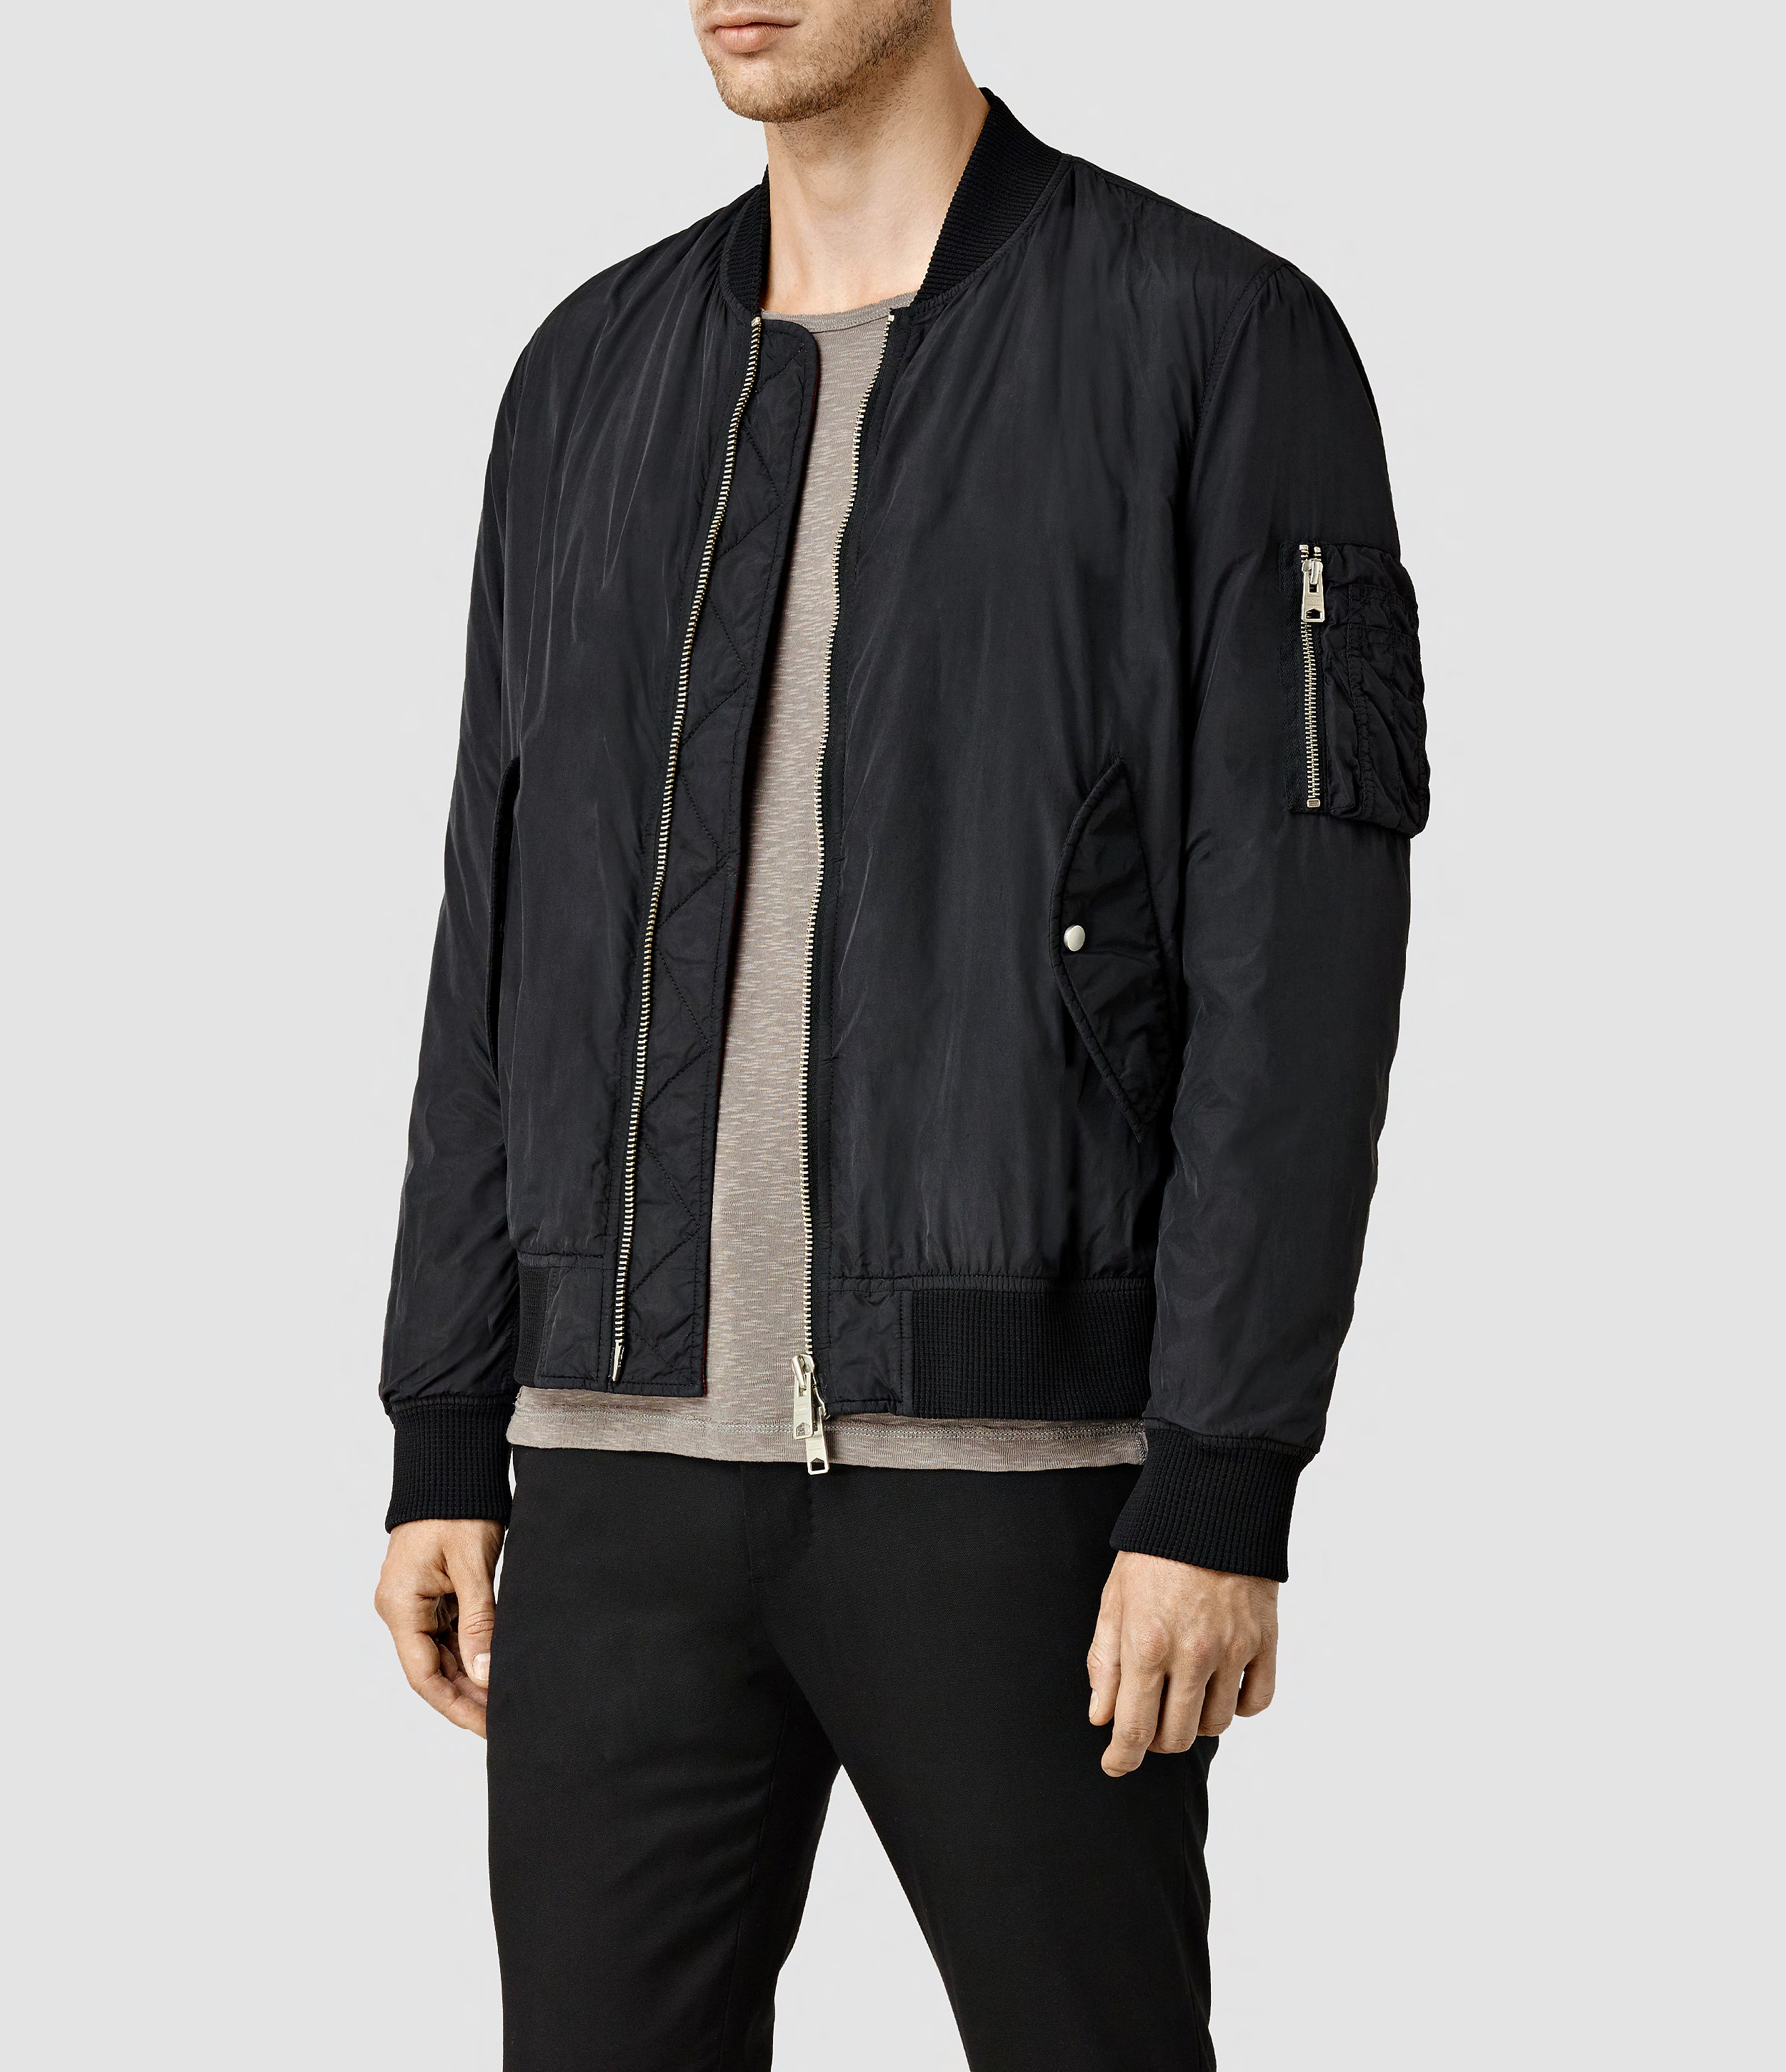 Shop from a variety of parkas jackets and coats in a variety of colors and lengths today. your browser is not supported. To use ASOS, we recommend using the latest versions of Chrome, Firefox, Safari or Internet Explorer ASOS DESIGN denim parka in washed black. $ COLLUSION Unisex puffer jacket in black. $ New Look Faux Fur.